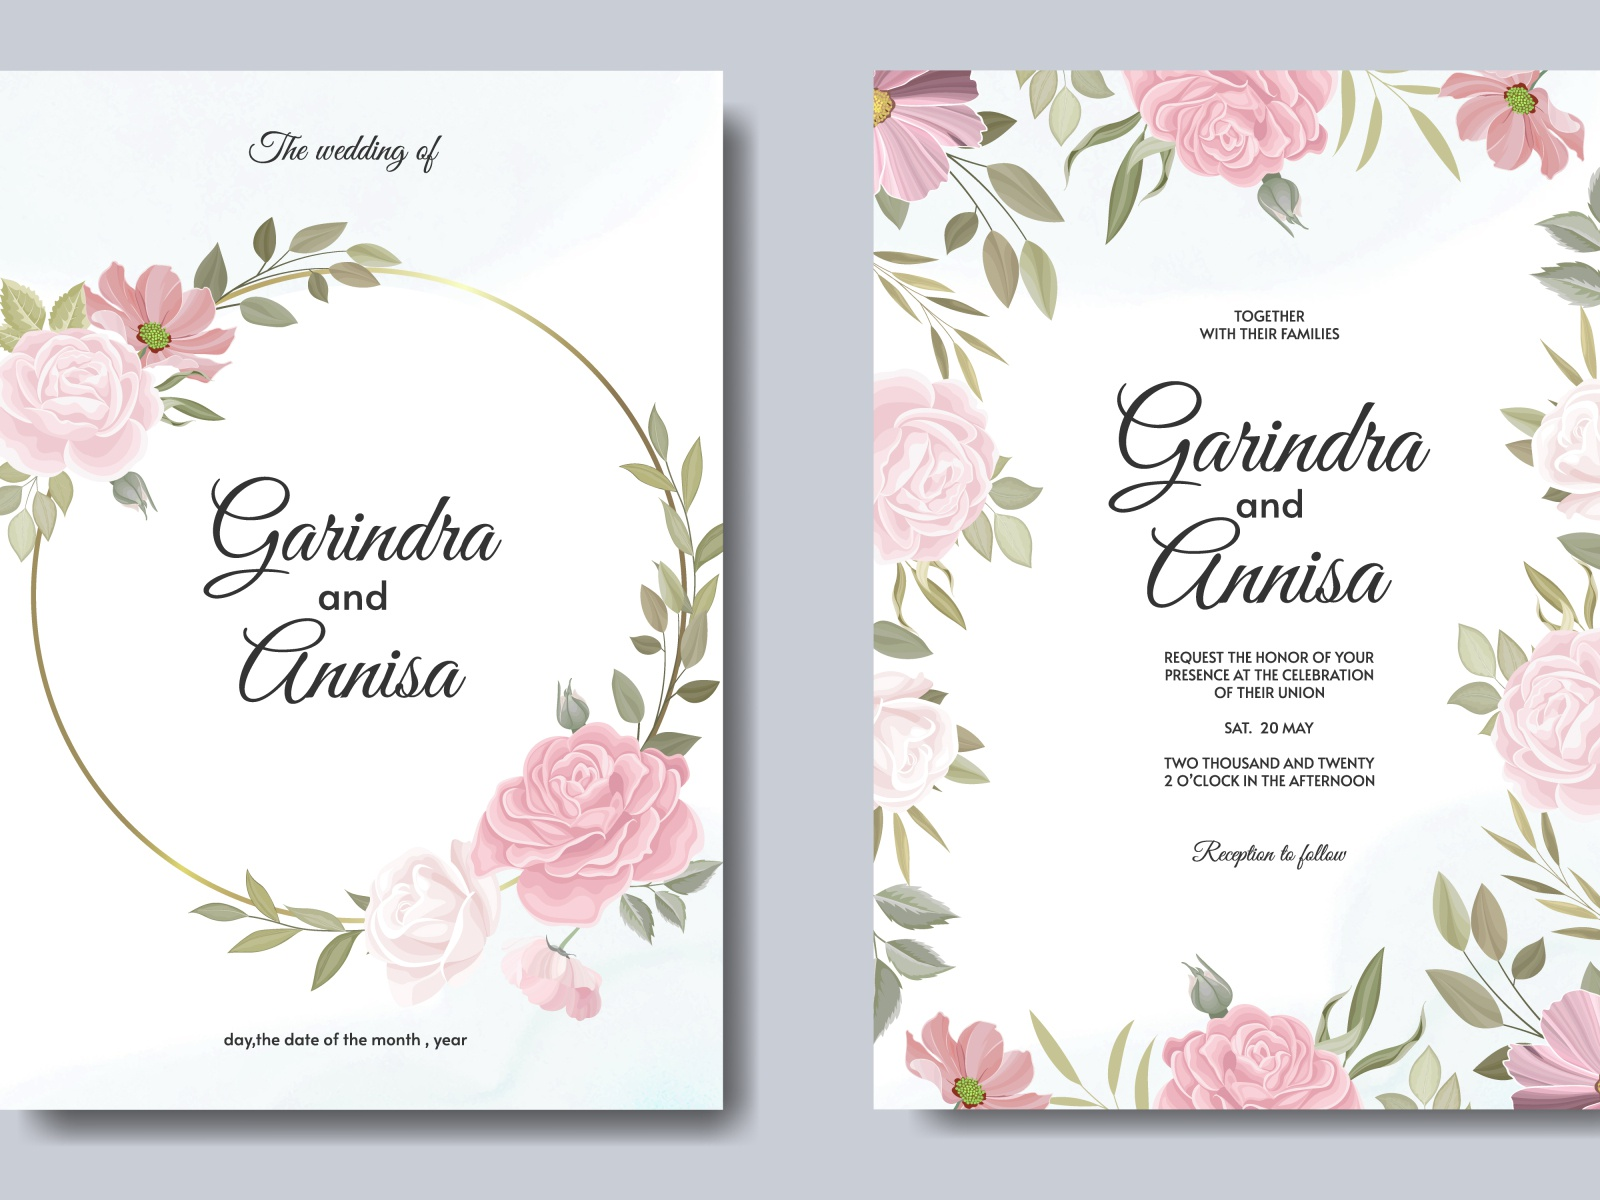 Beautiful Floral Frame Wedding Invitation Card Template By Maria Nurince Dominggas On Dribbble,Beautiful Master Bedroom Designs For Girls